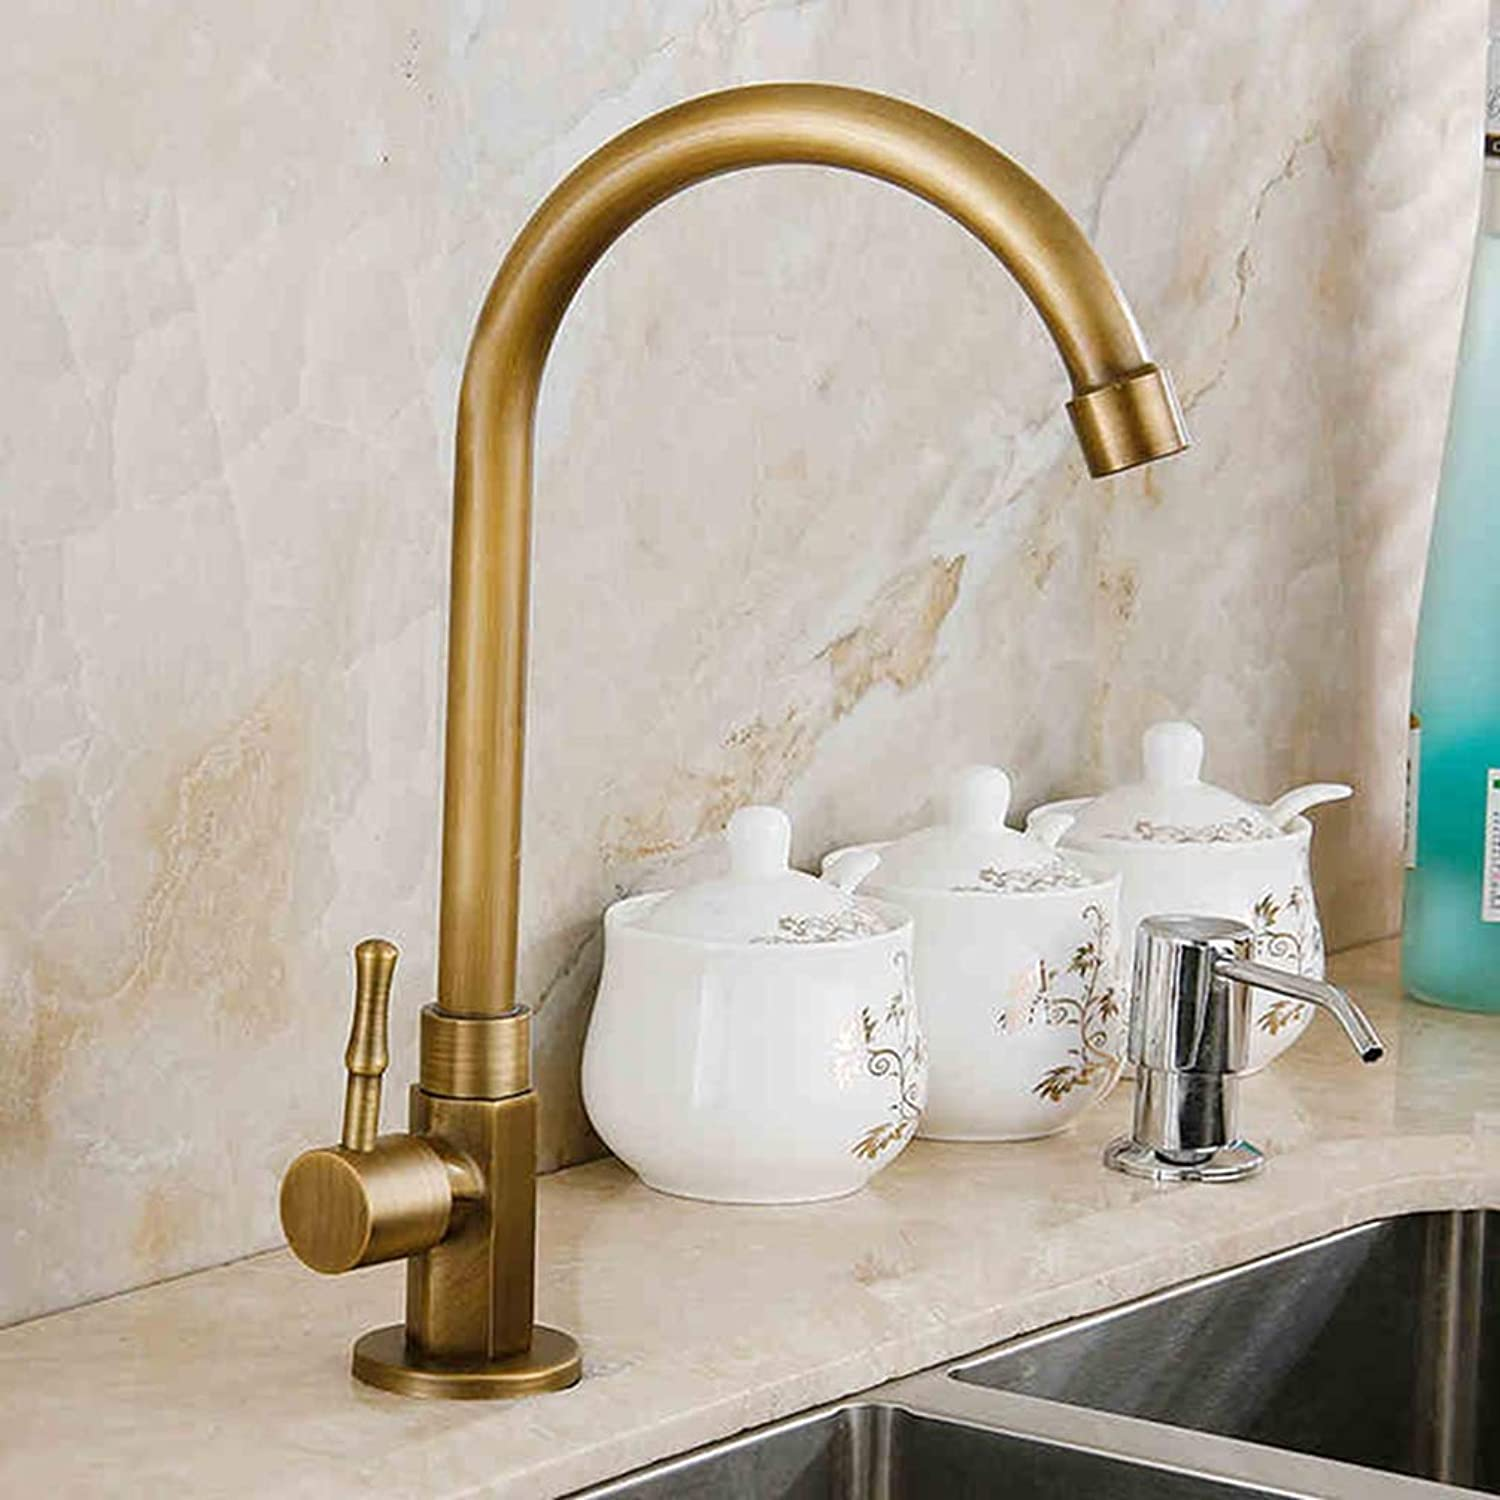 FZHLR Antique Brass Kitchen Faucet Kitchen Sink Tap Basin Faucet Cold-Water Tap 360 Swivel Spout Basin